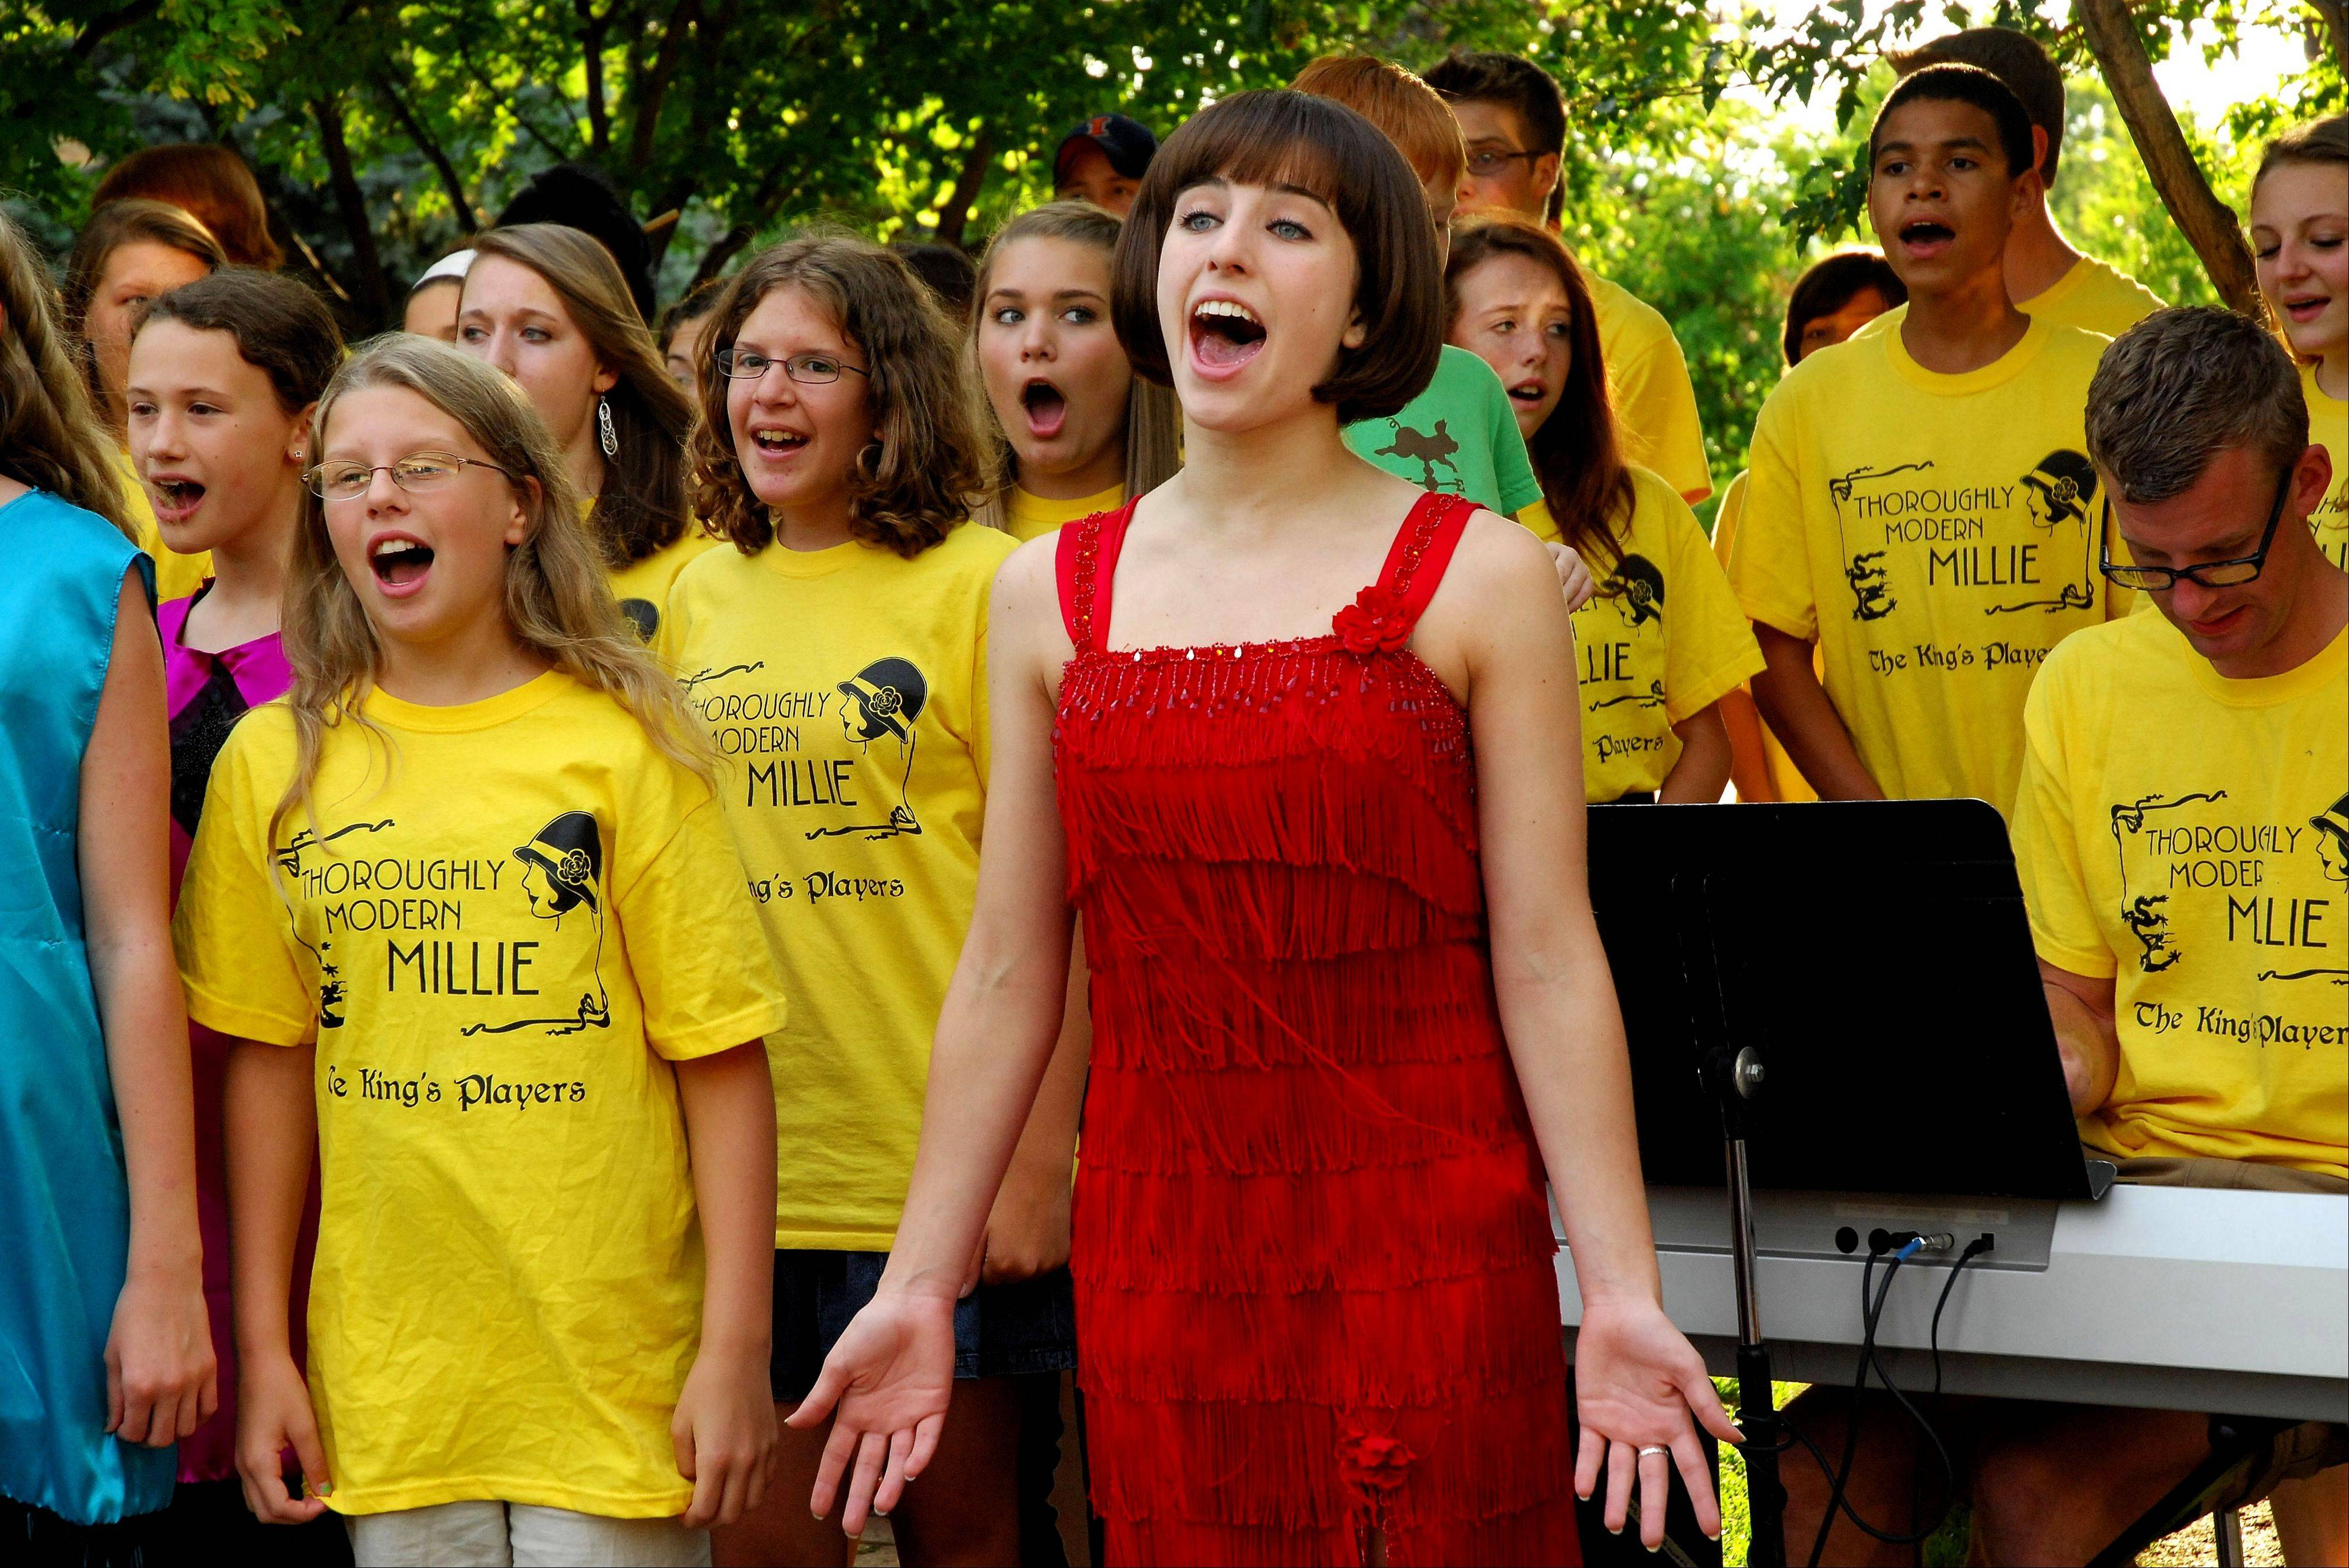 Claire LaTourette, as Millie, rehearses with the chorus.